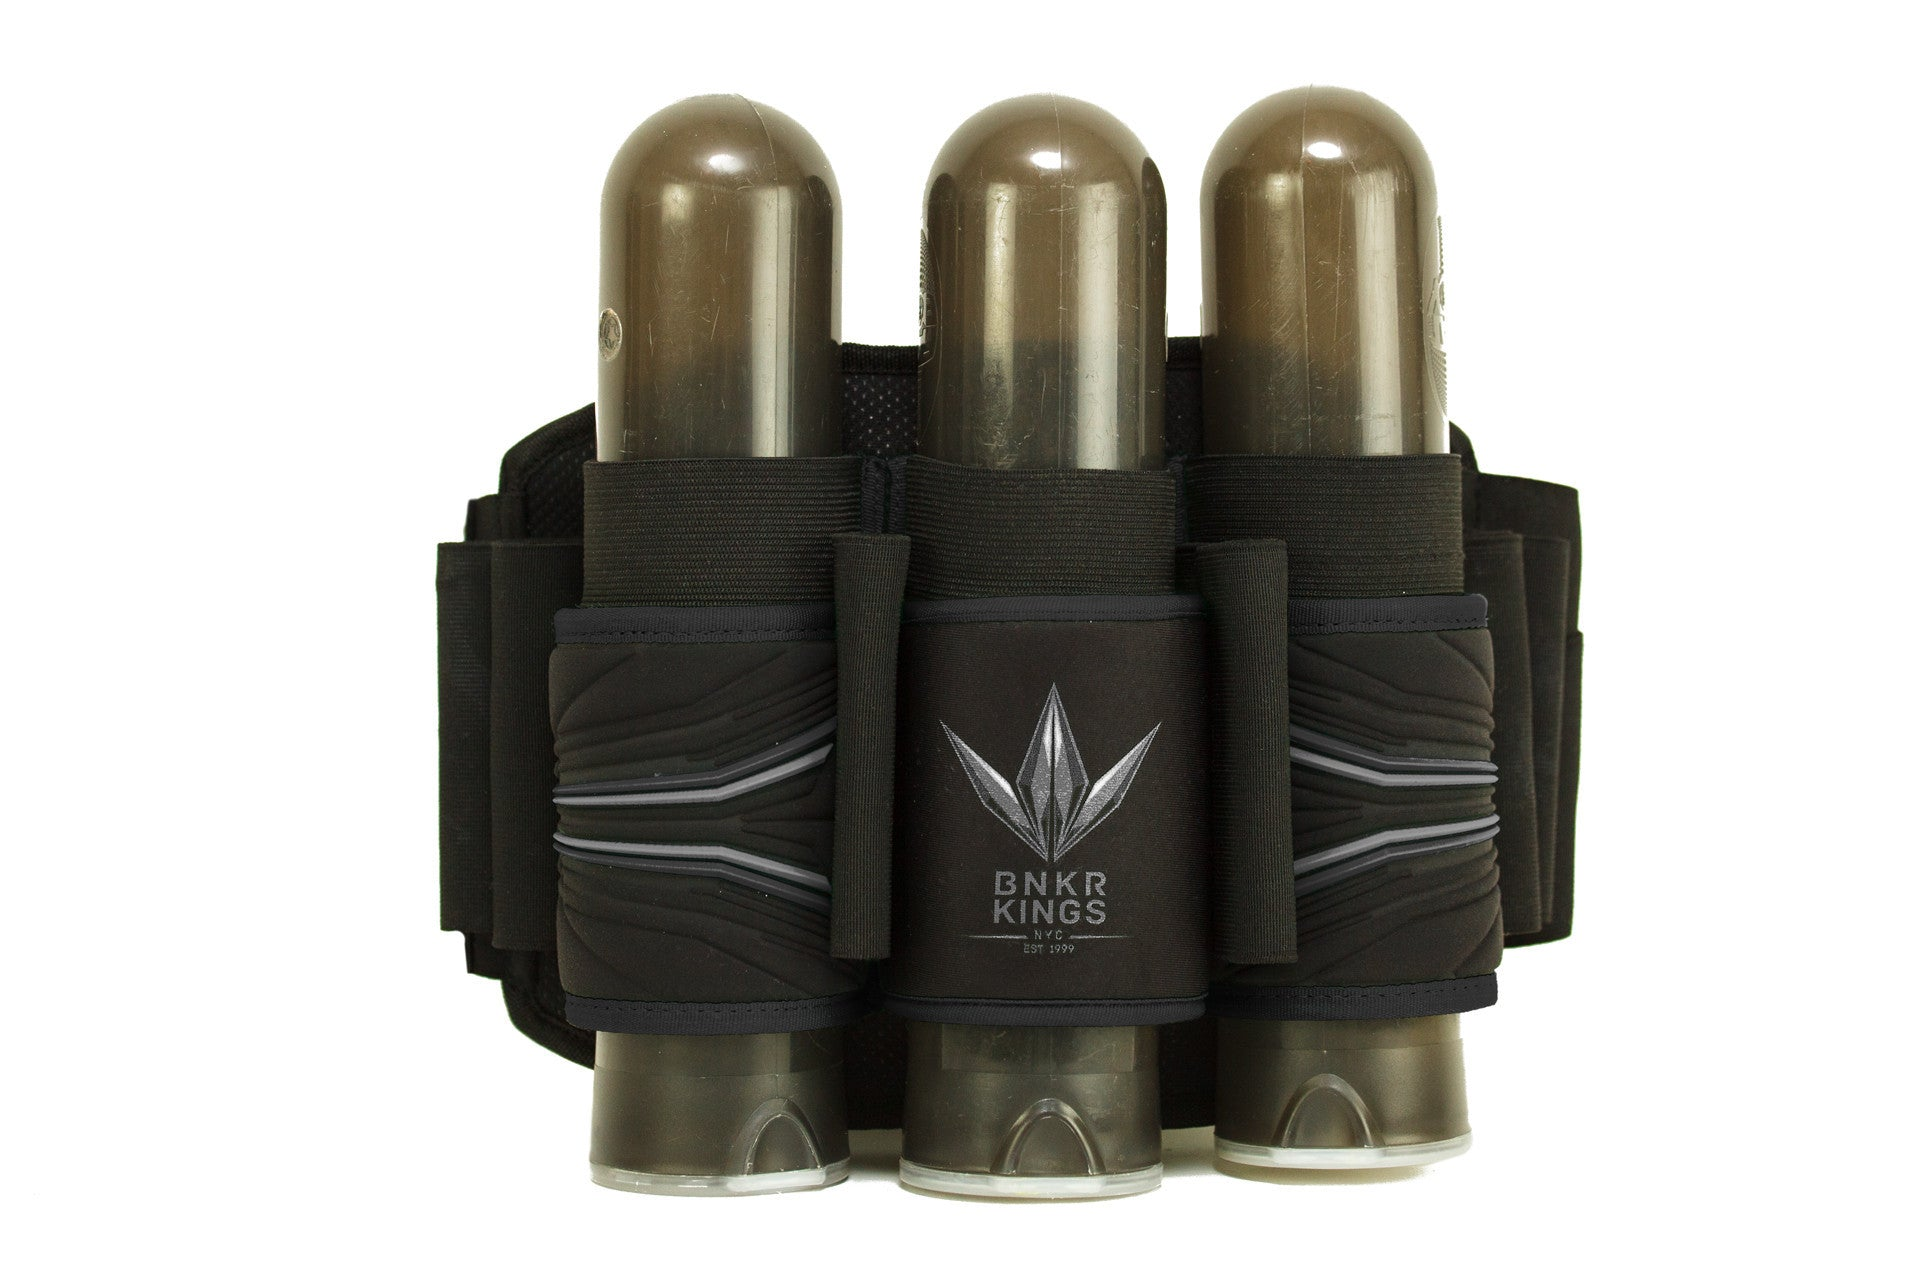 Stealth Grey Bunker Kings Nano 3 4 Pod Pack